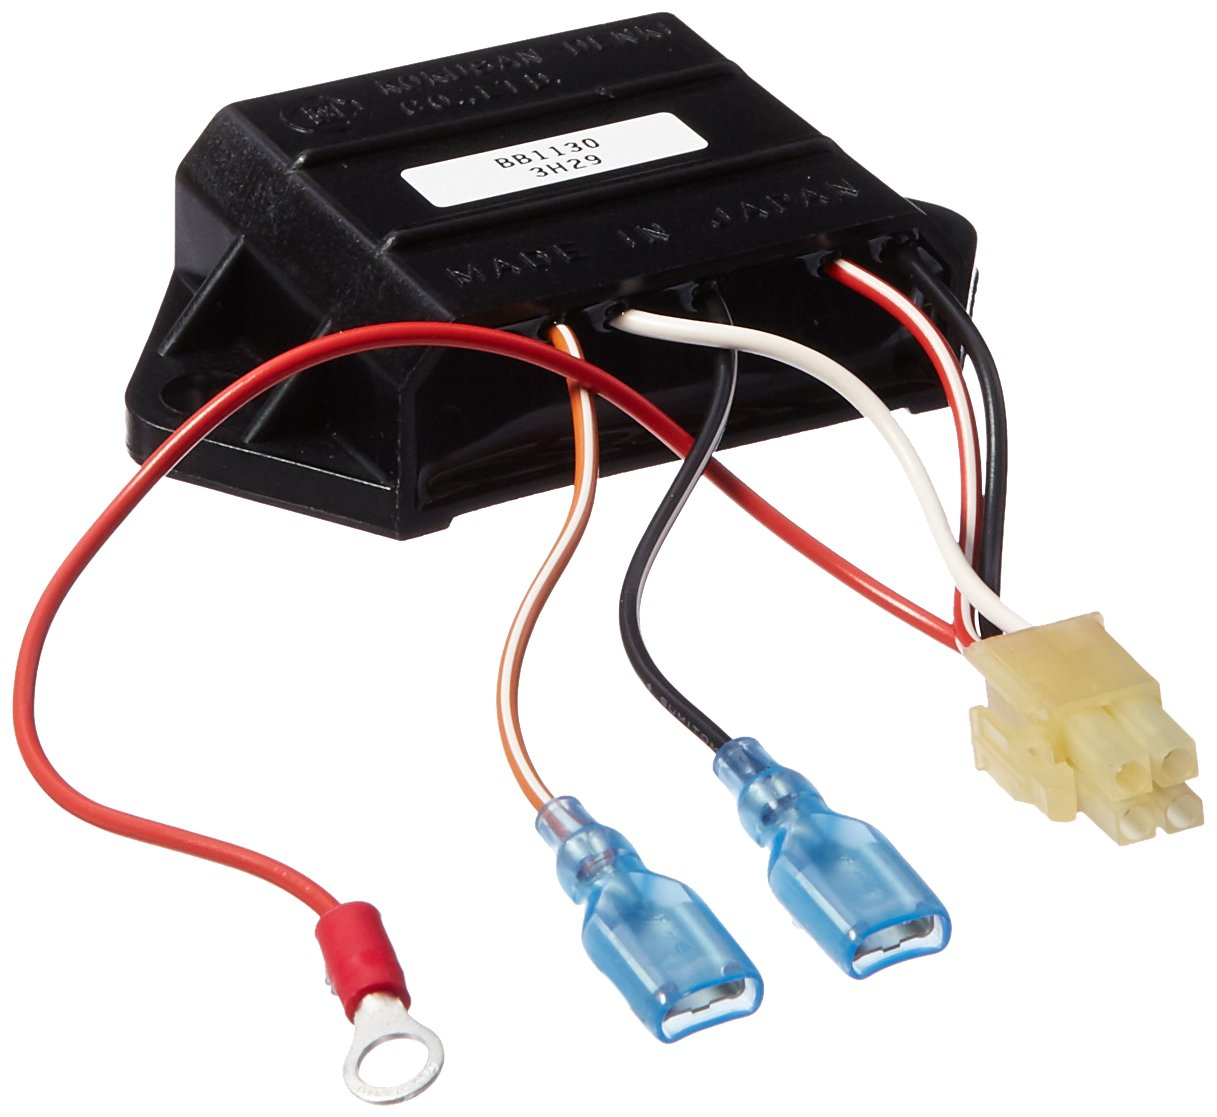 Amazon EZGO Ignitor for 4Cycle Engines Outdoor Decorative – Industrial Wiring Diagram Ezgo 875